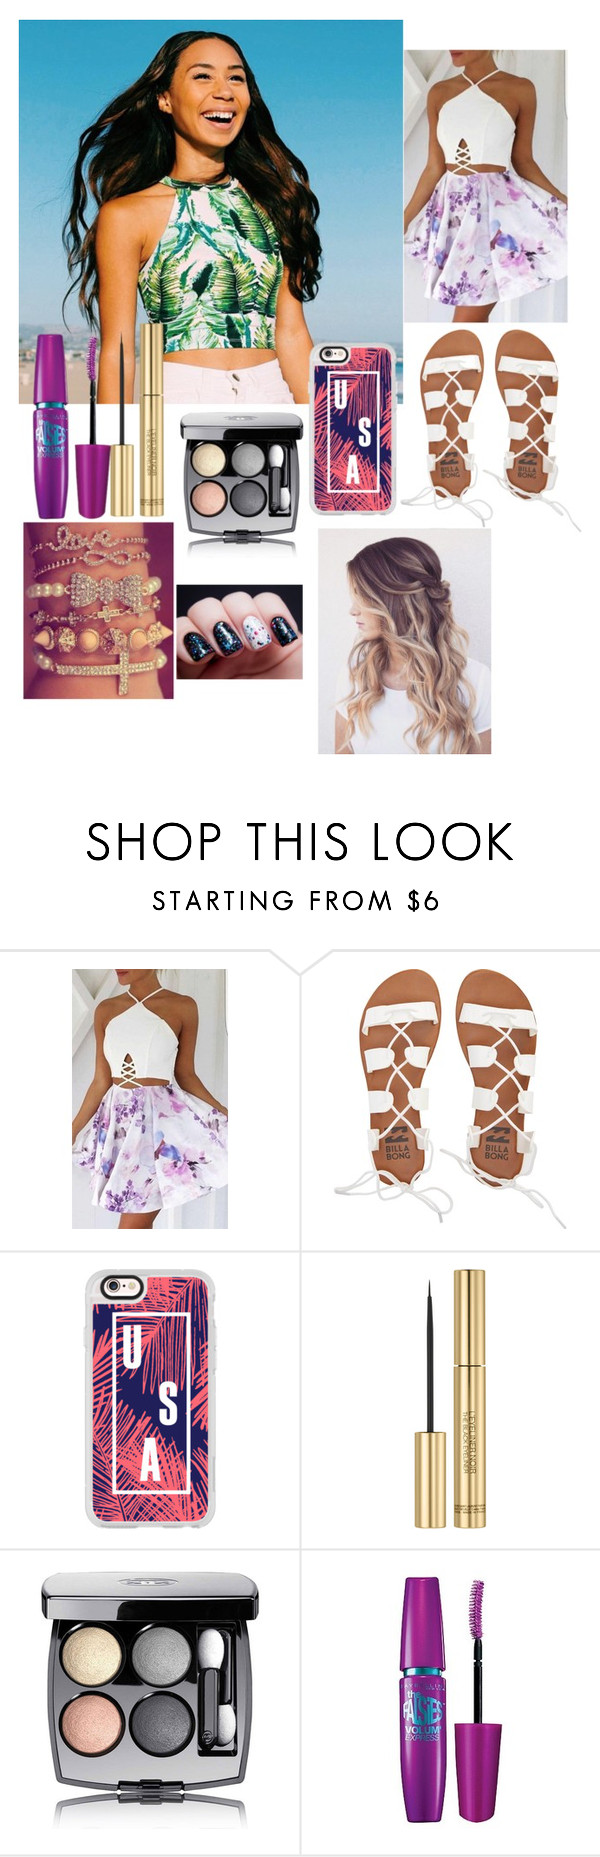 """""""On The Beach w/ Eva."""" by geazybxtch24 ❤ liked on Polyvore featuring beauty, Billabong, Casetify, Yves Saint Laurent, Chanel and Maybelline"""